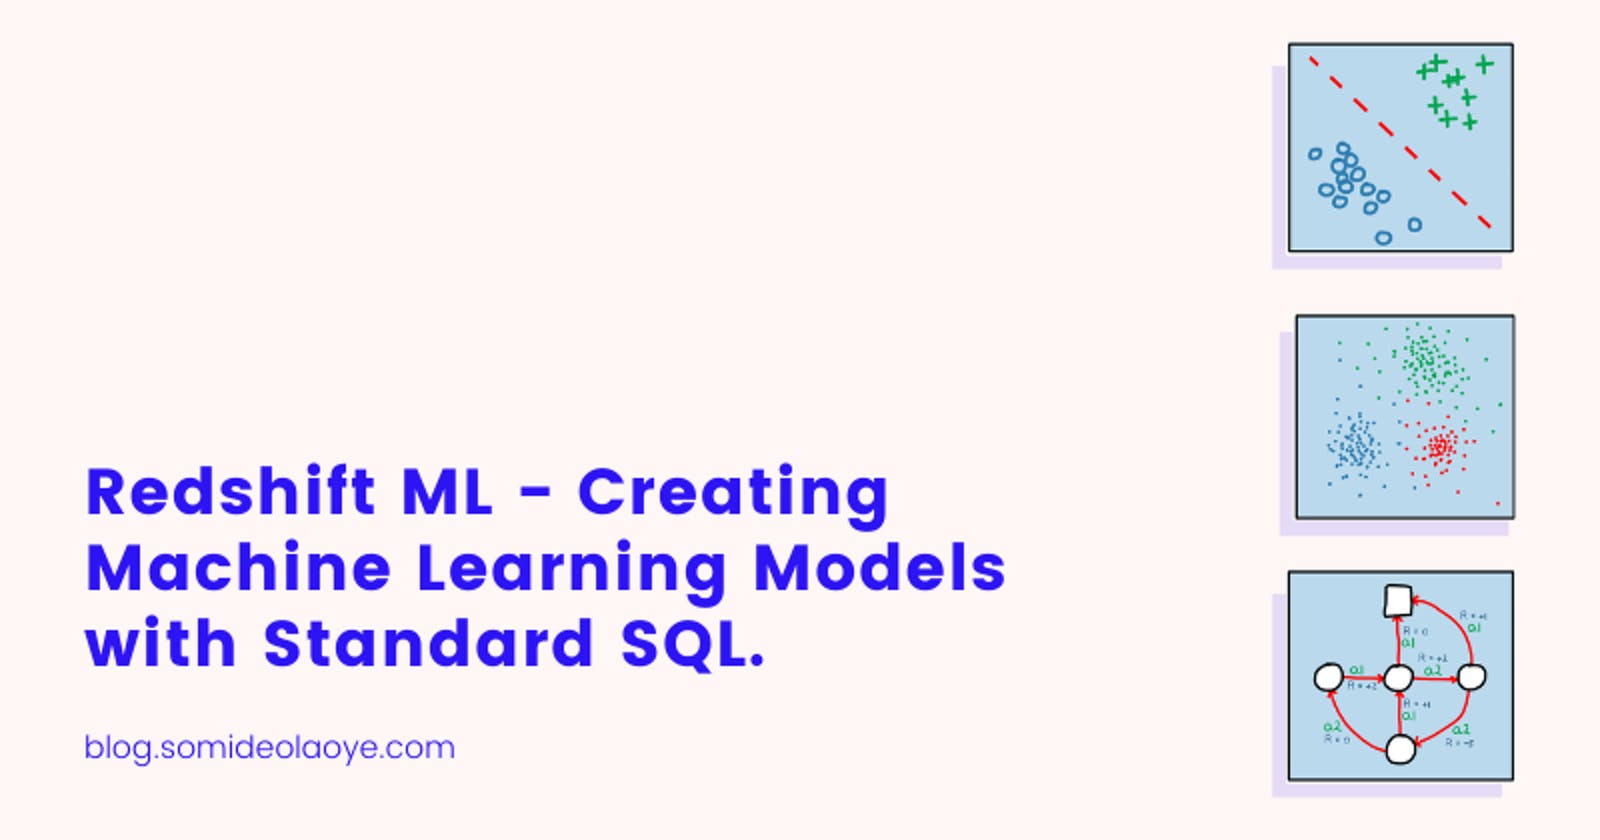 Amazon Redshift ML - Creating Machine Learning Models with Standard SQL.